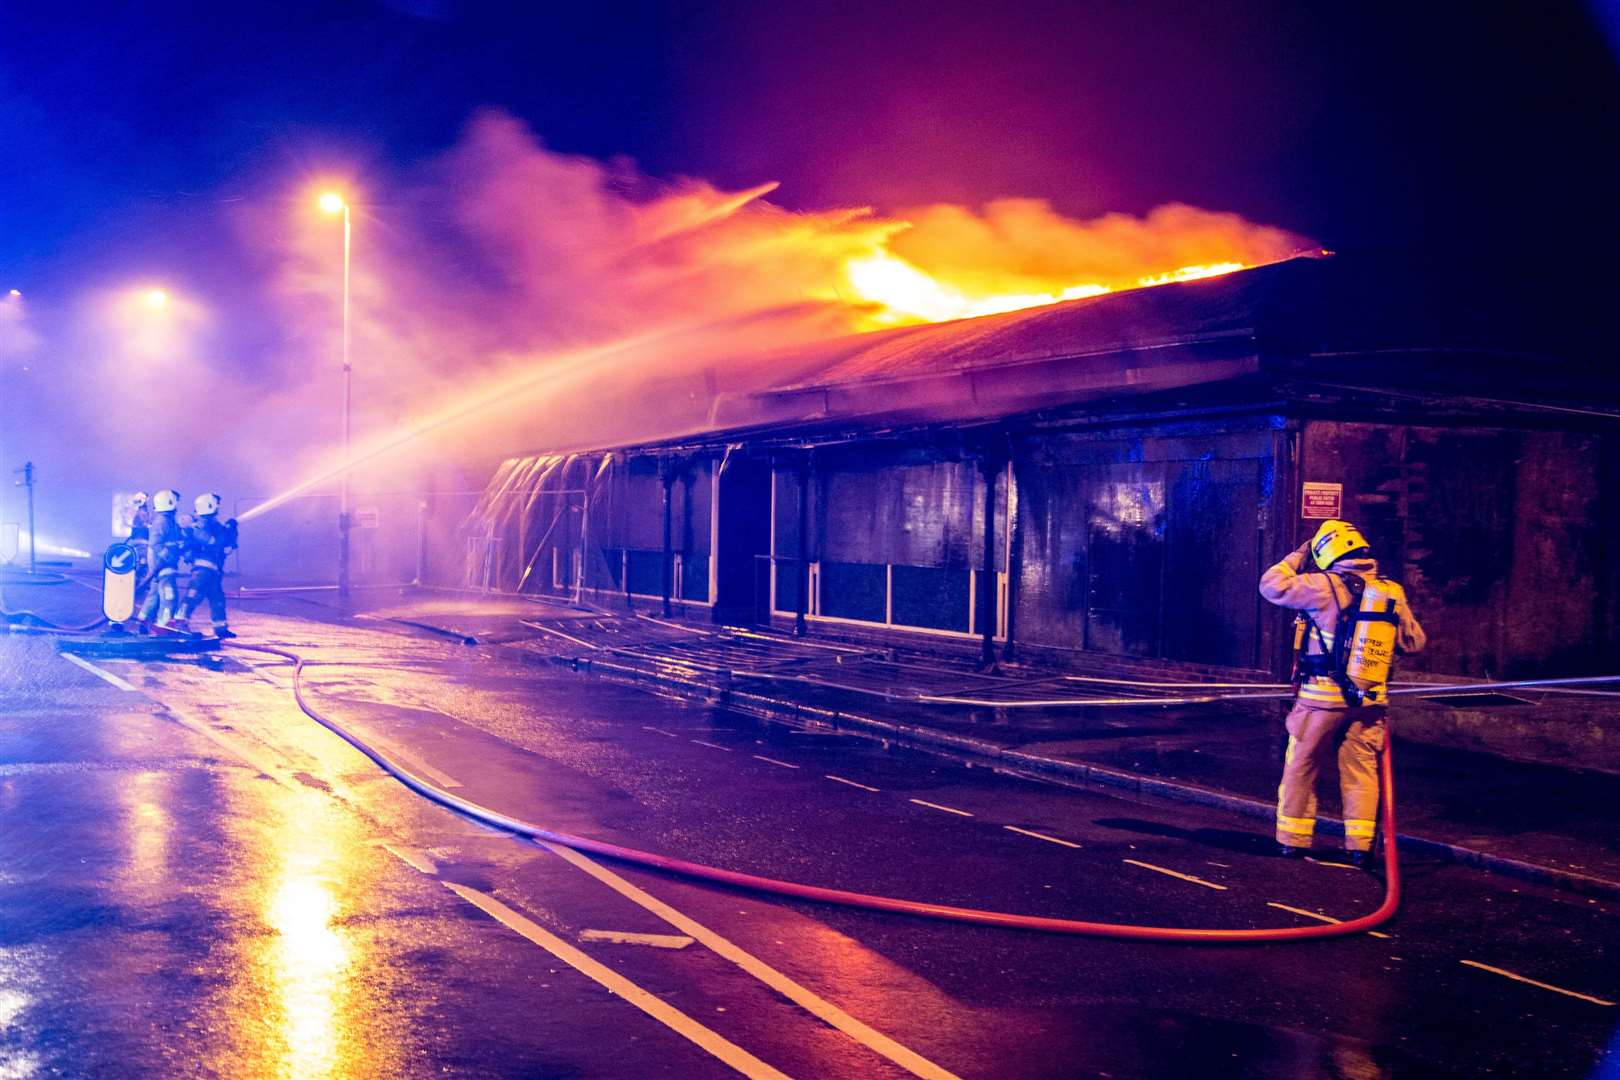 Folkestone photographer Dan Desborough captured some stunning images of the Onyx fire at its height